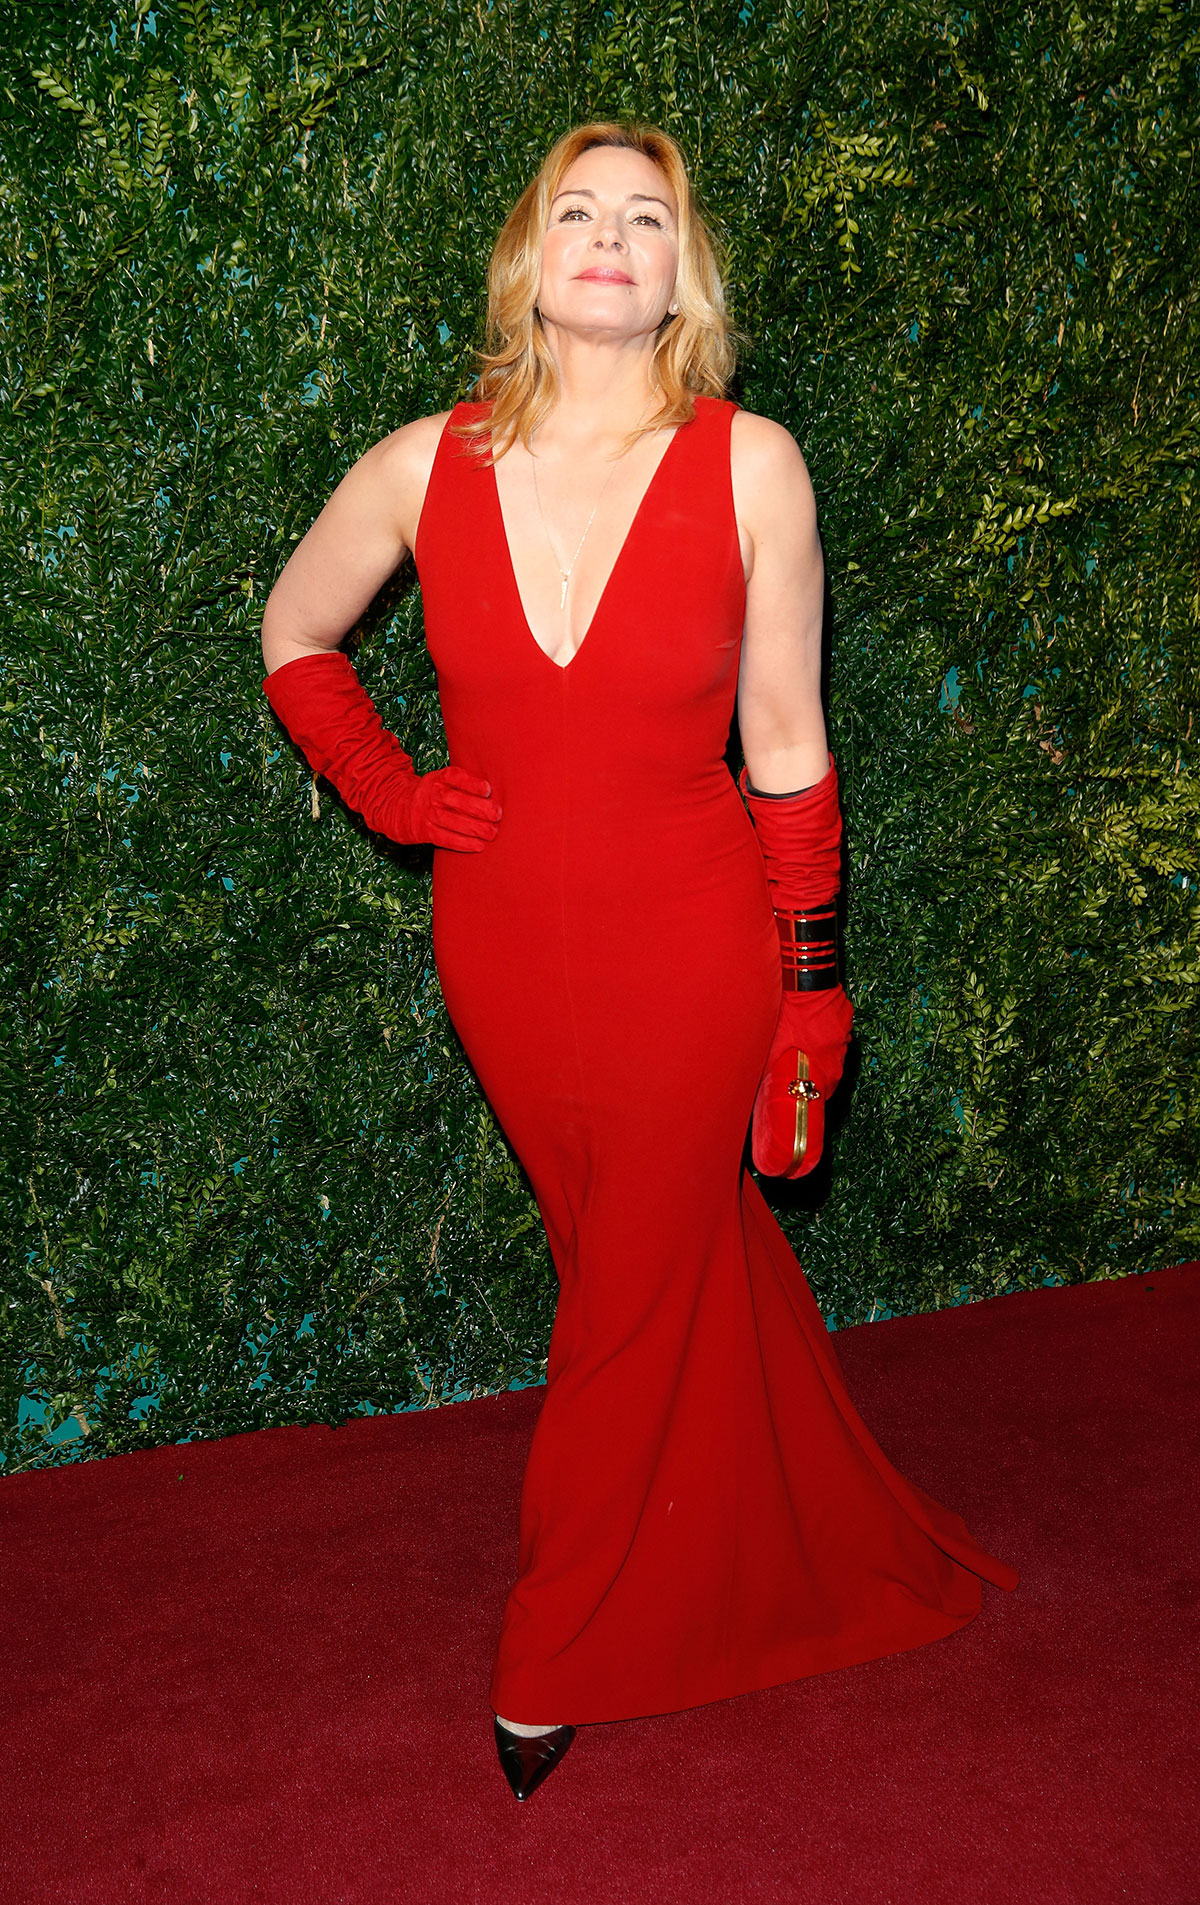 KIM CATTRALL at 2014 London Evening Standard Theatre Awards